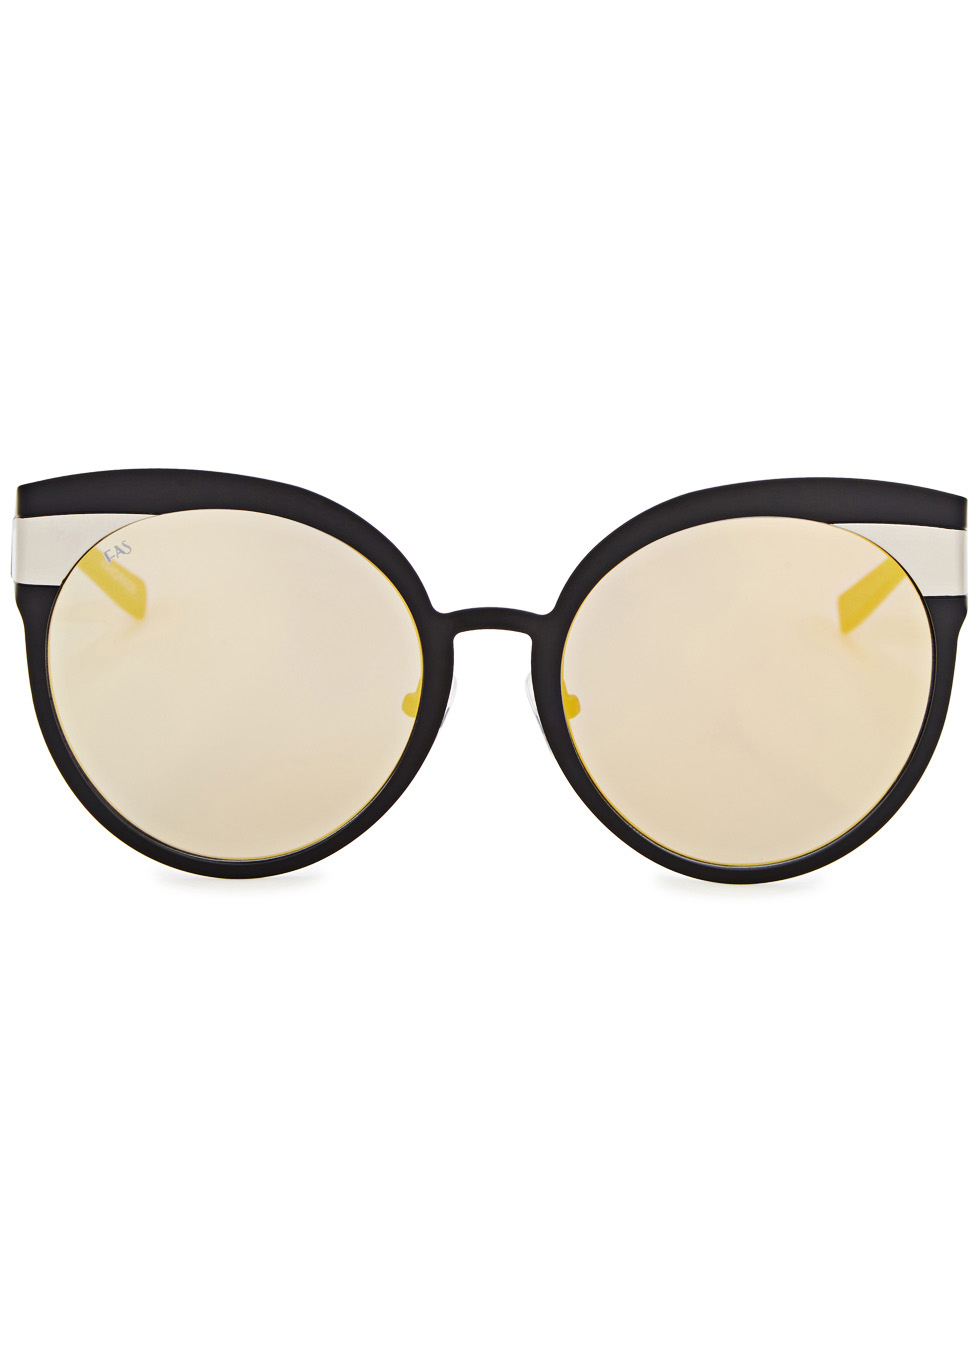 Little Chaos black cat-eye sunglasses - FOR ART'S SAKE